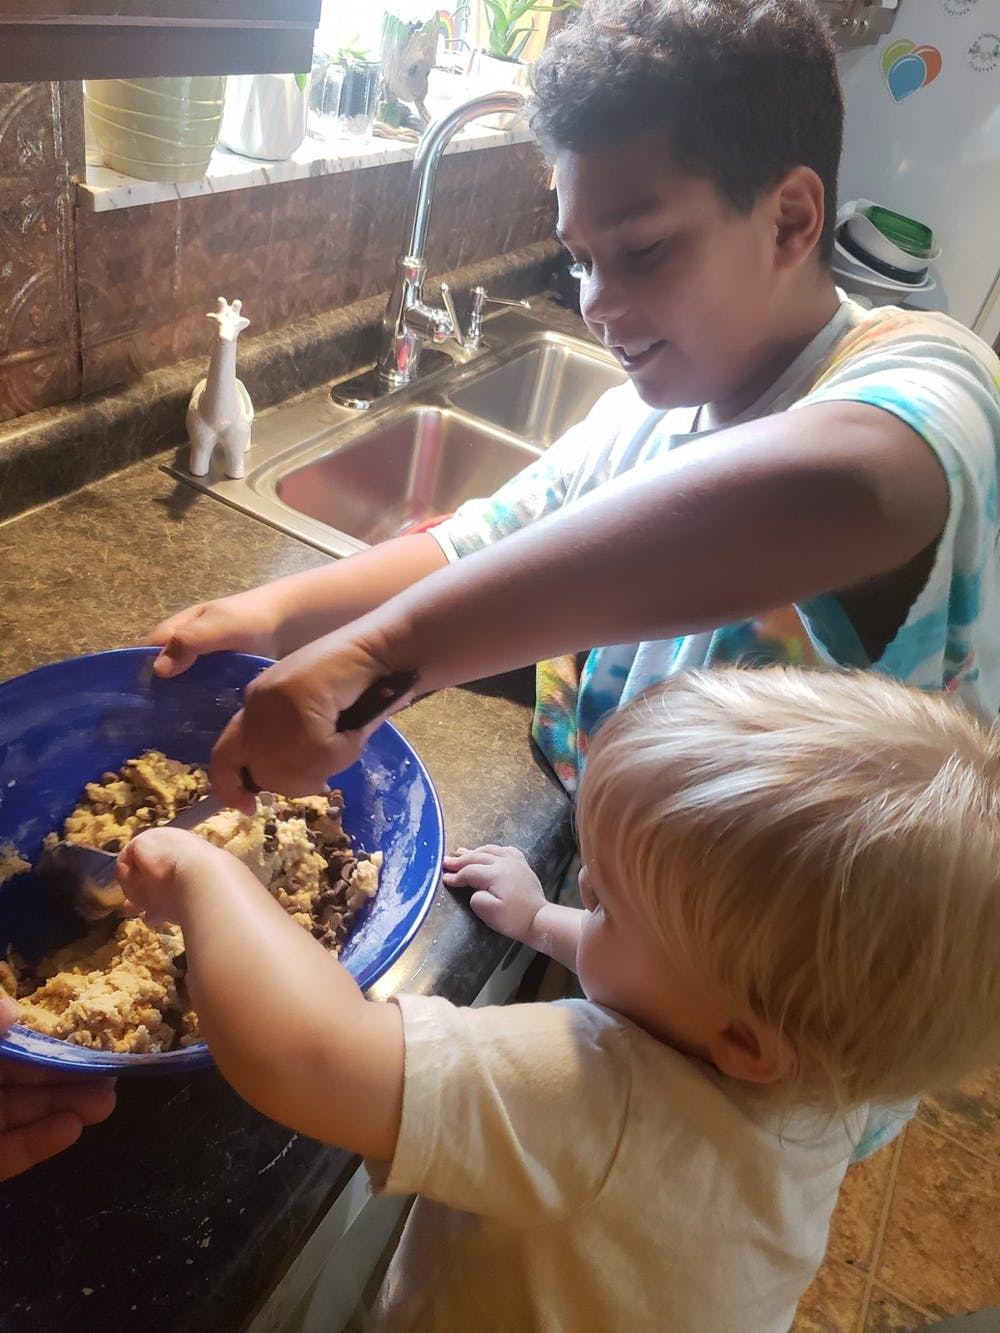 Karin Hartwell's children, Shawn (left) and Ki (right) Hartwell help her bake this summer in their kitchen. Hartwell said Shawn and Ki only help make desserts when they're for their family, not her customers, for hygienic purposes. Karin Hartwell, Photo Provided